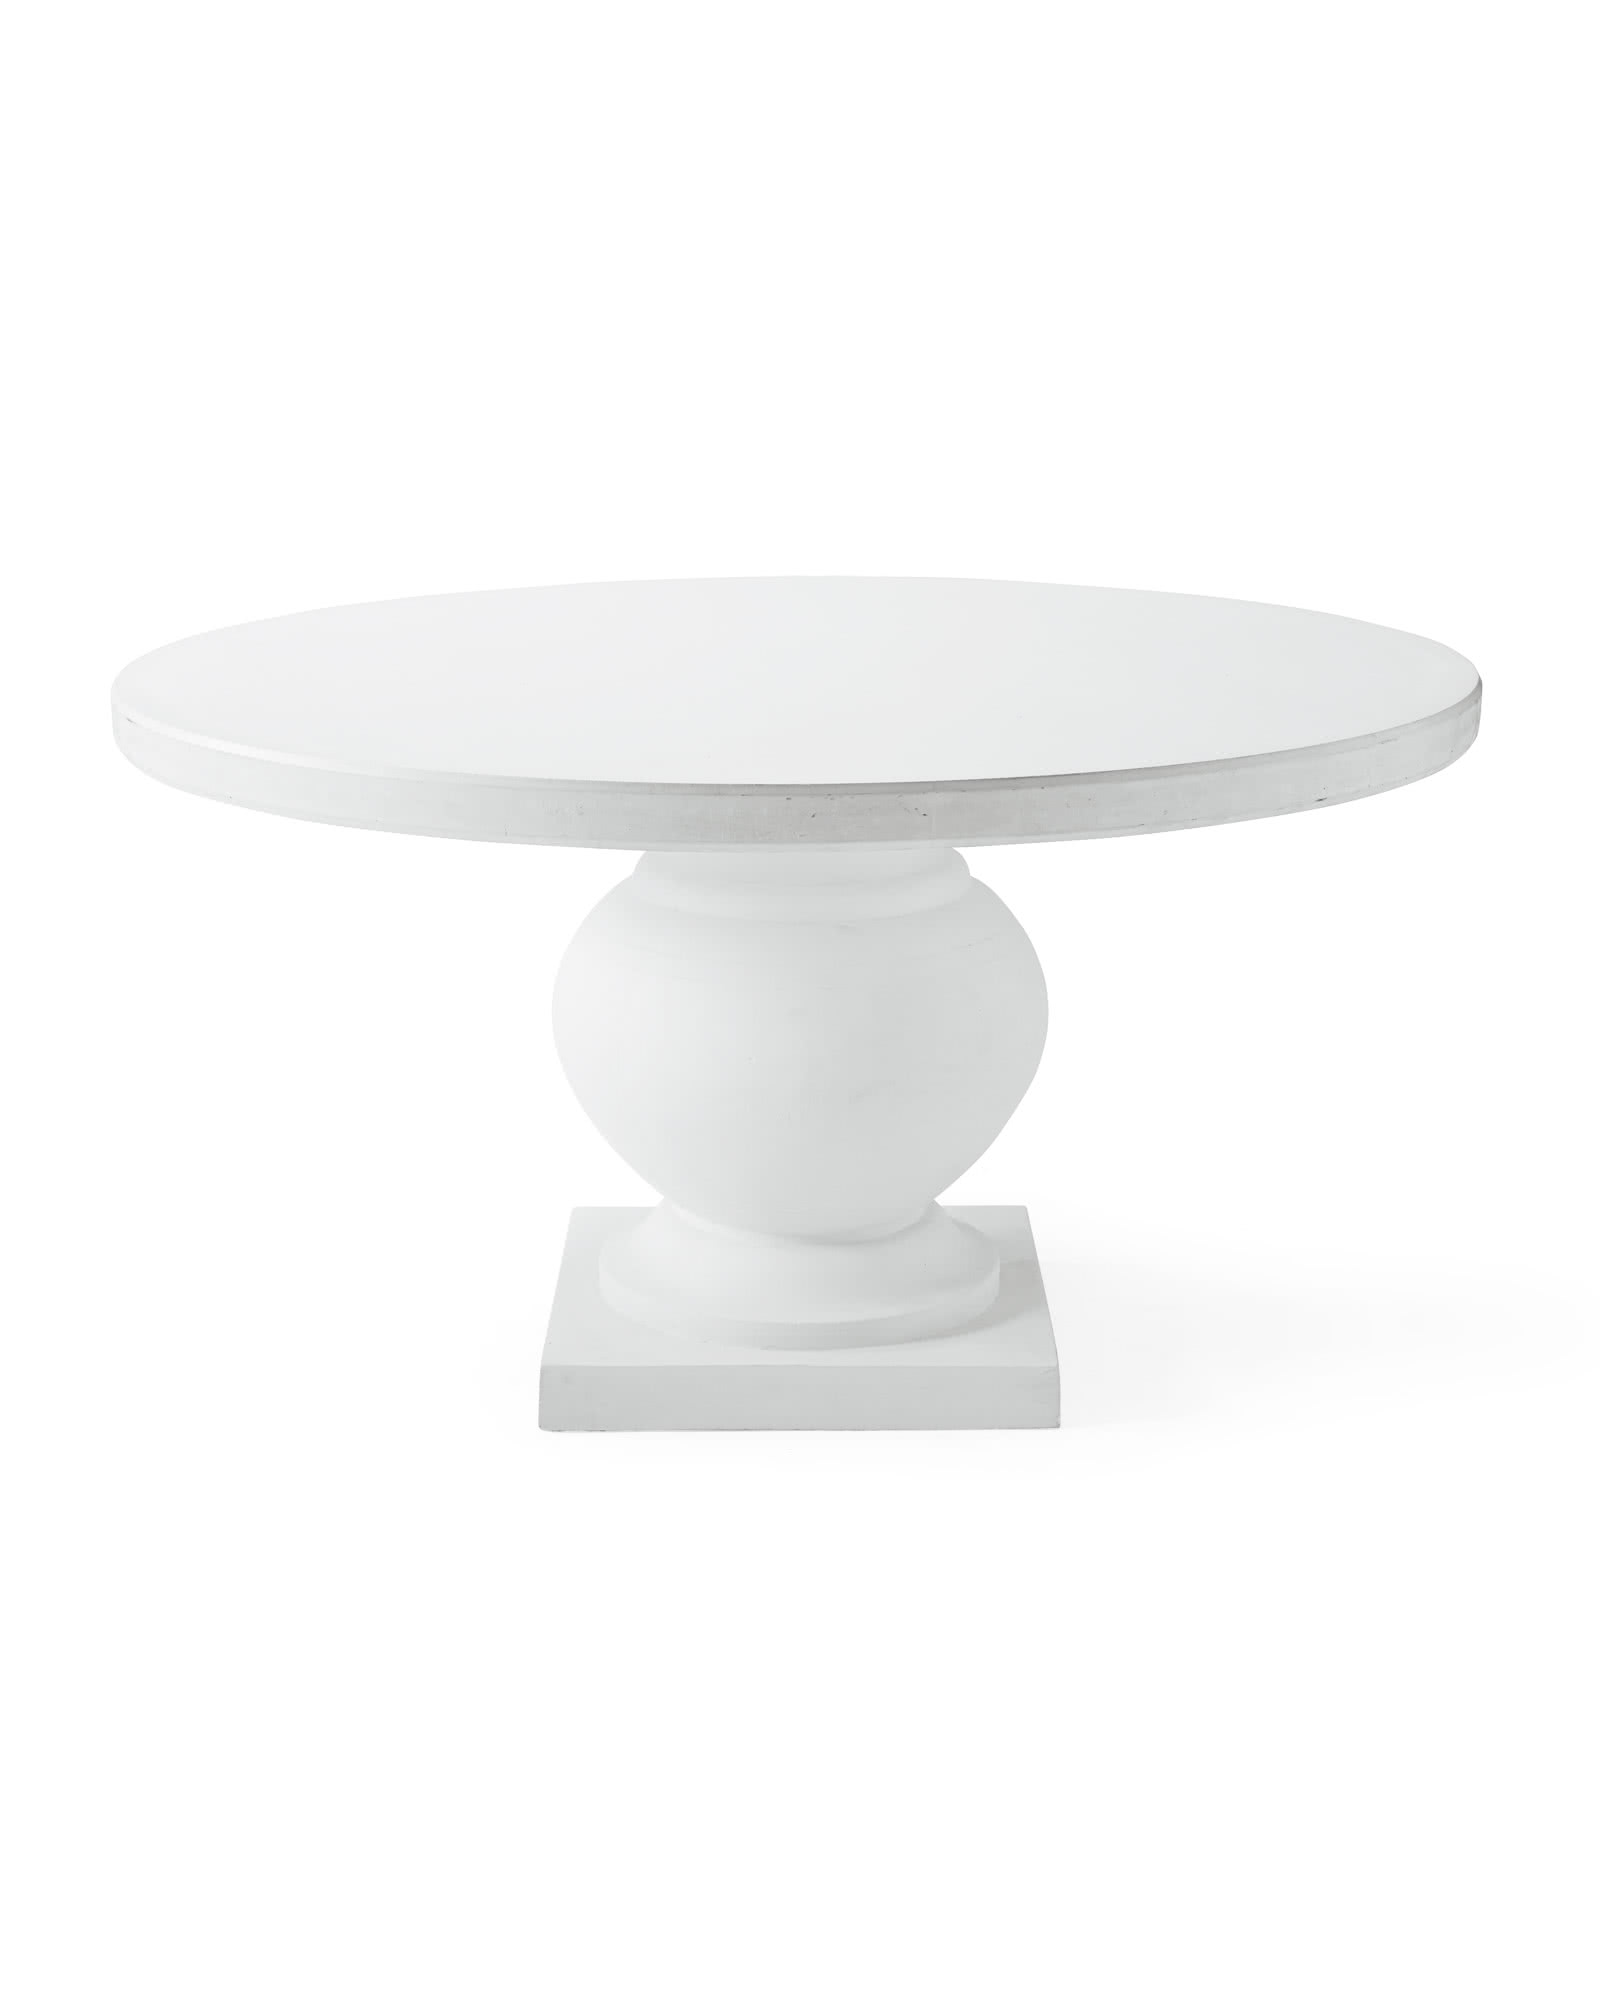 Terrace Round Dining Table, White/White